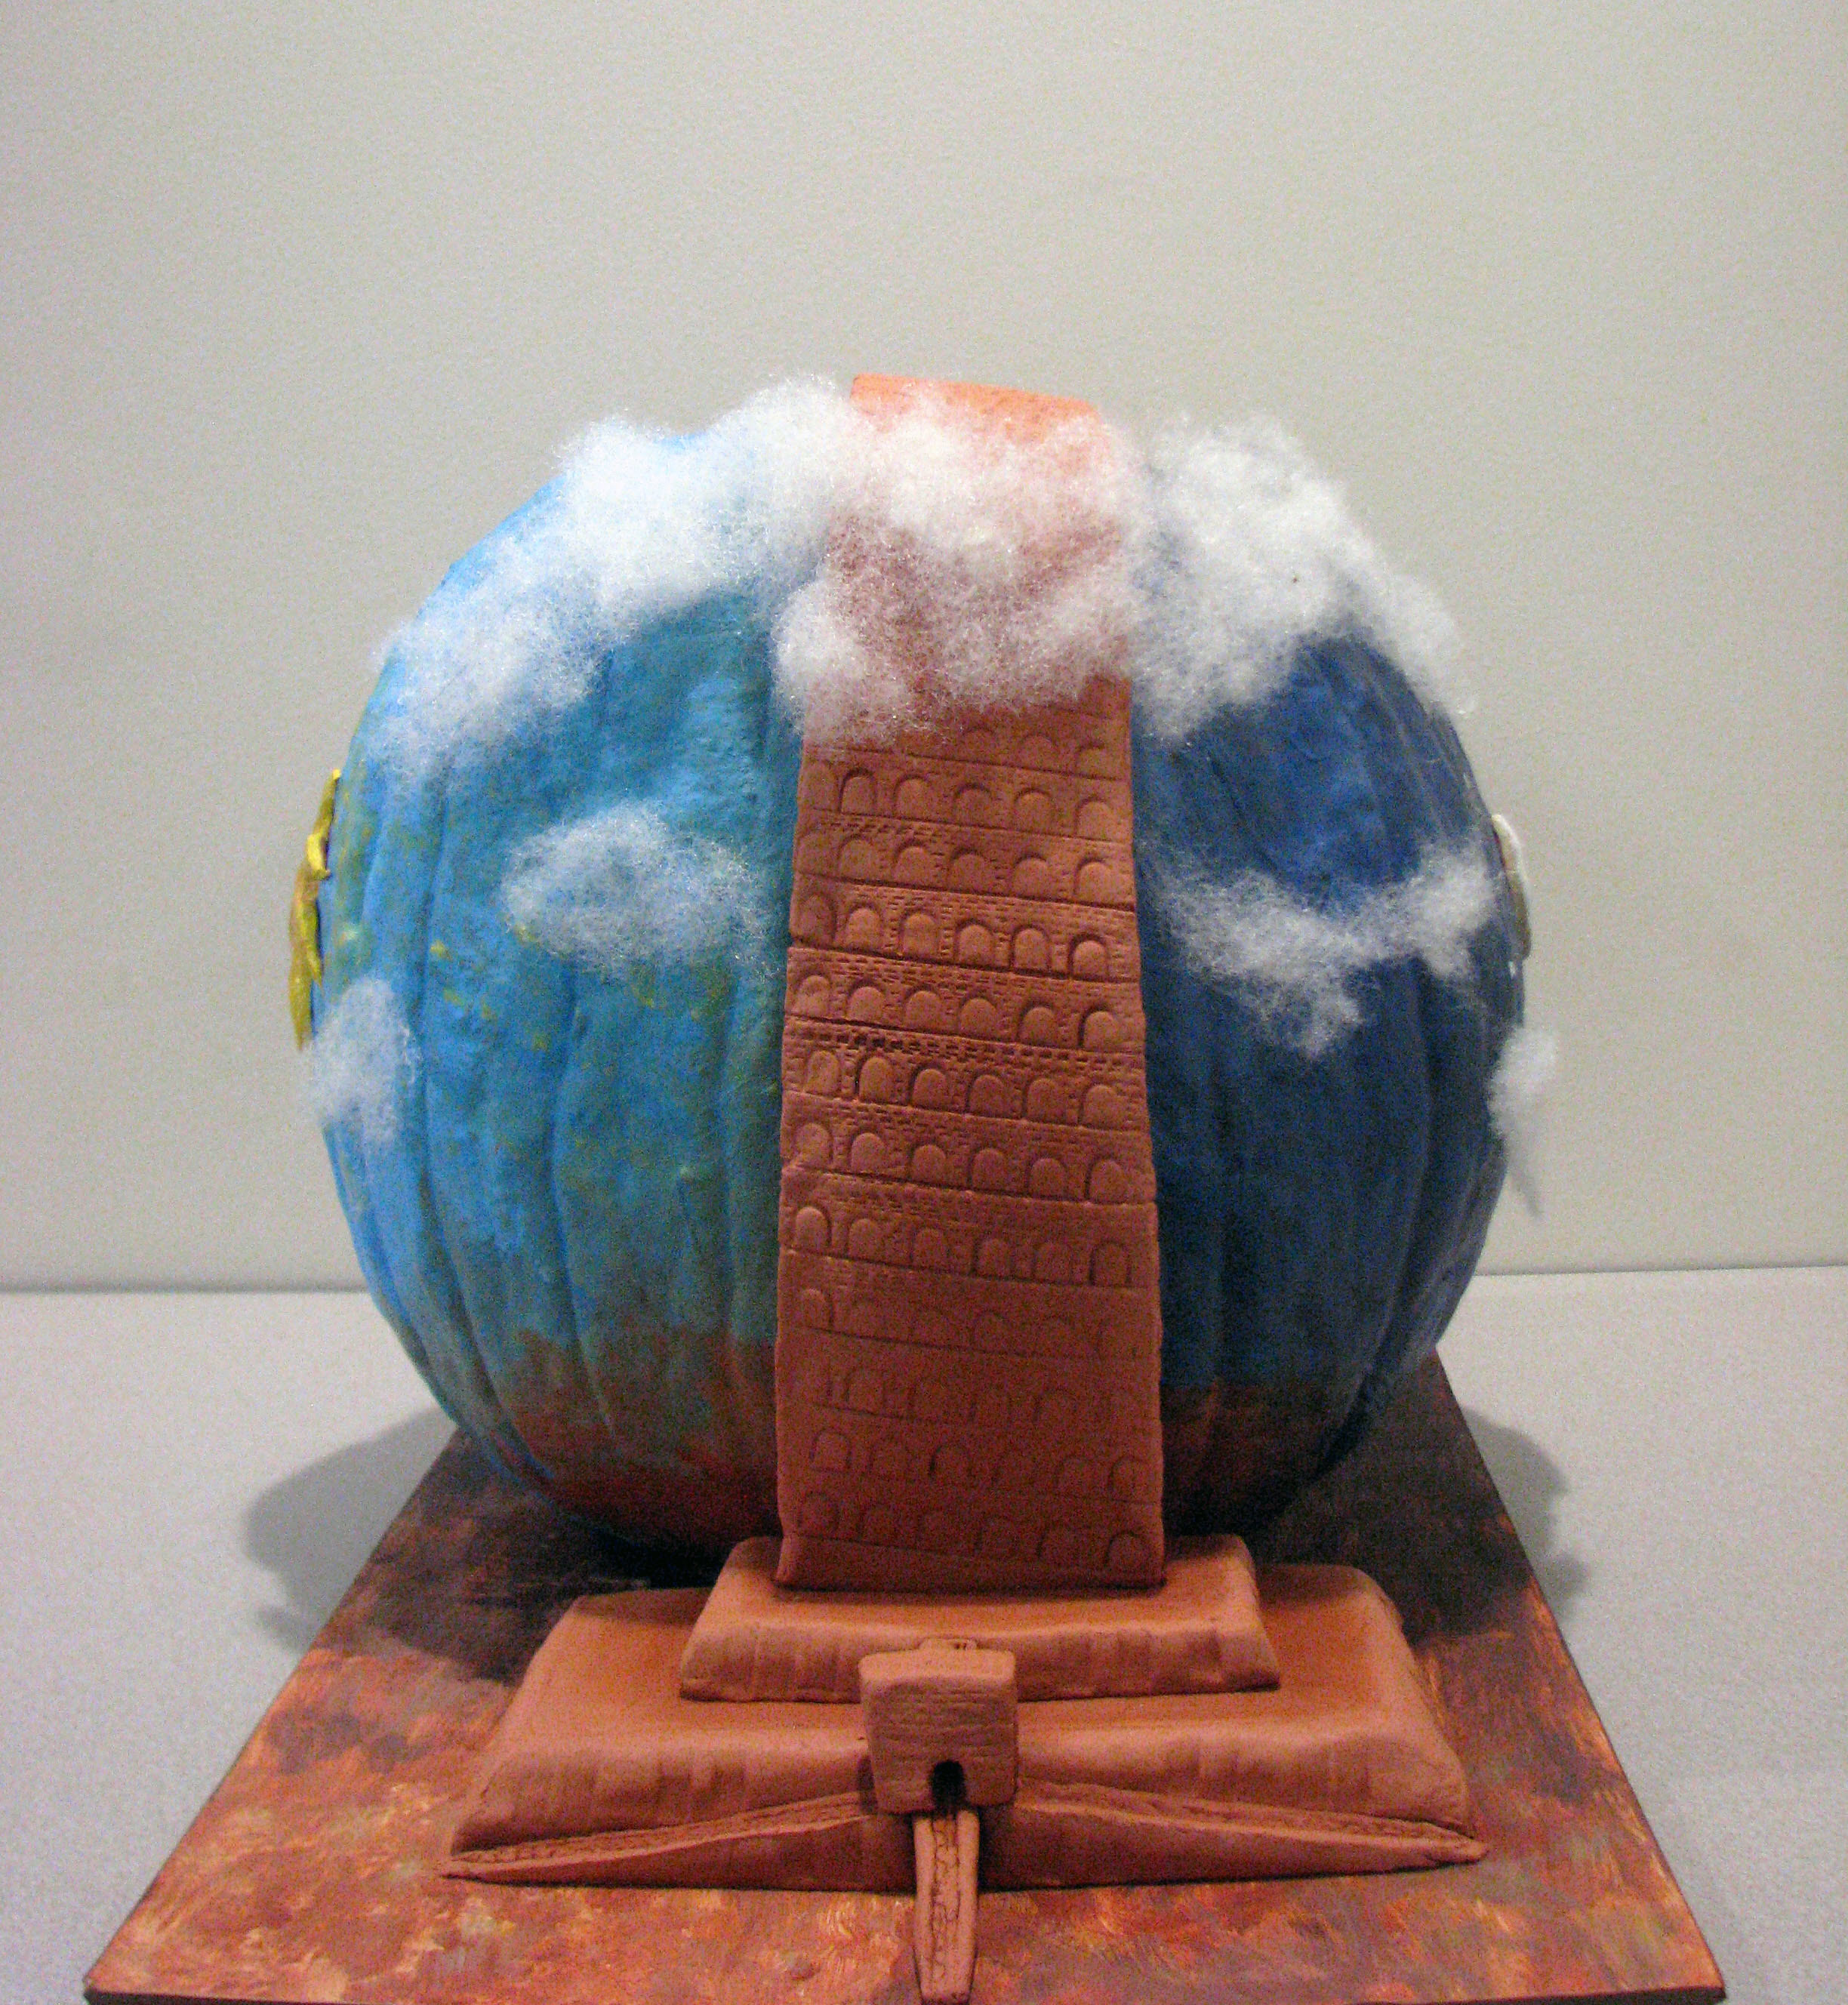 Painted pumpkin with a clay tower attached